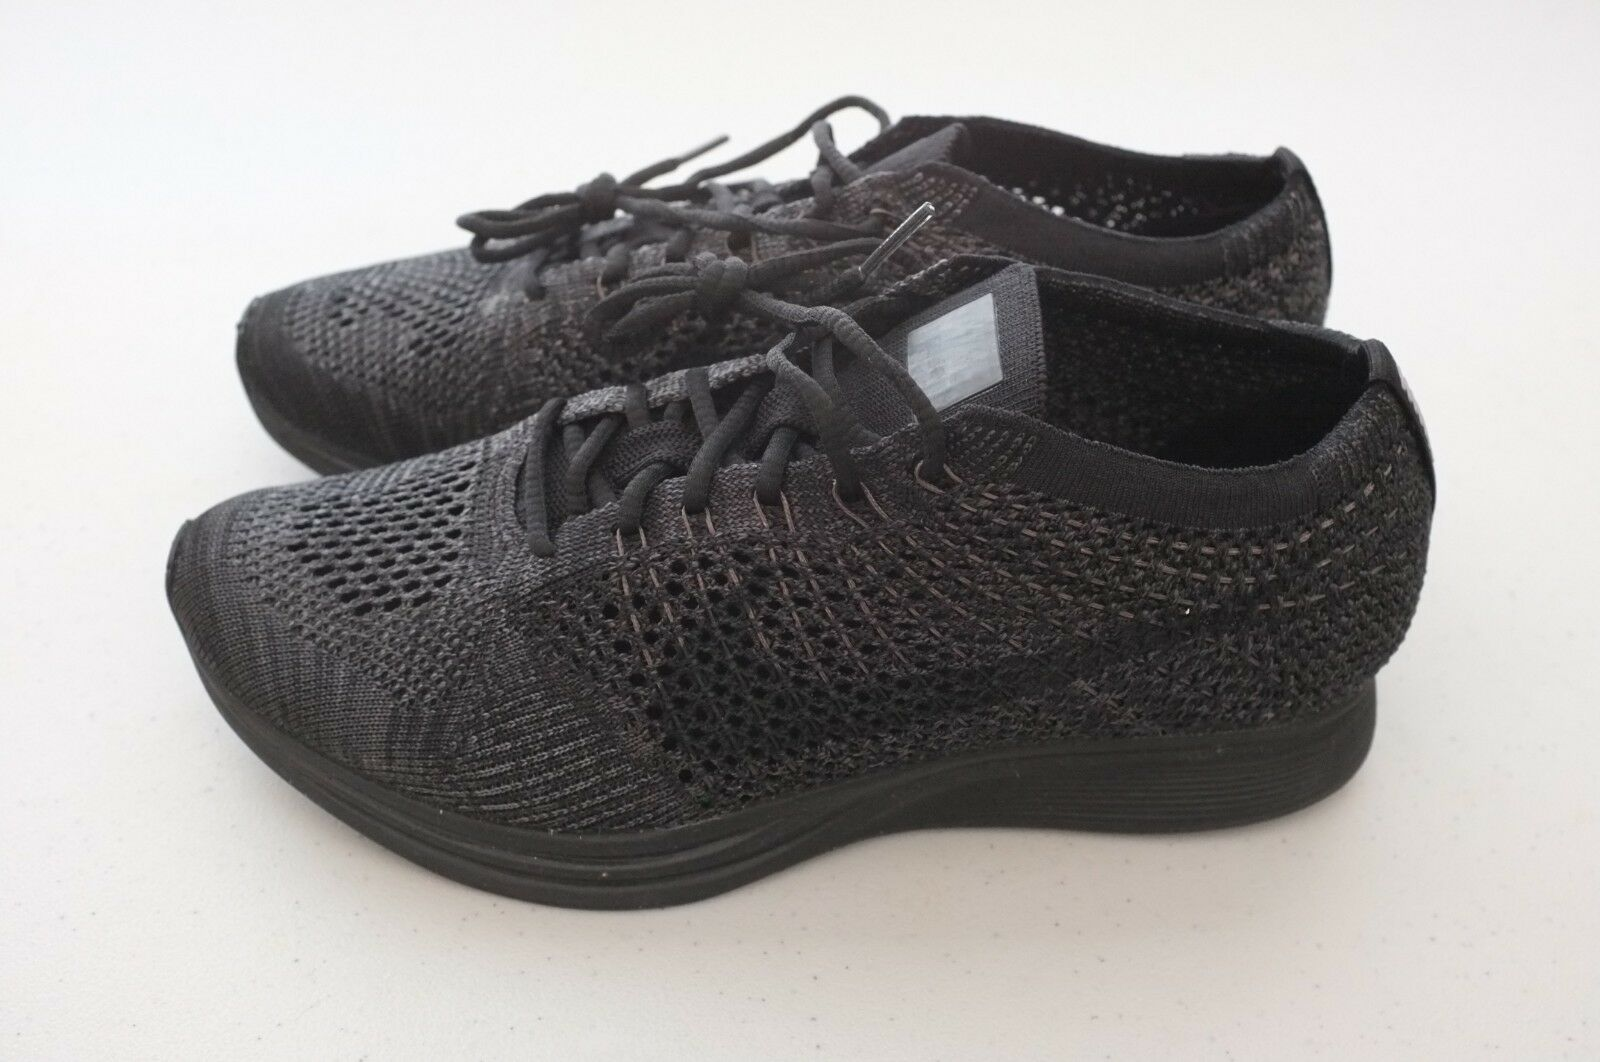 NEW Nike Mens Flyknit Racer Running shoes Triple Black Sz 7.5 (526628-009)